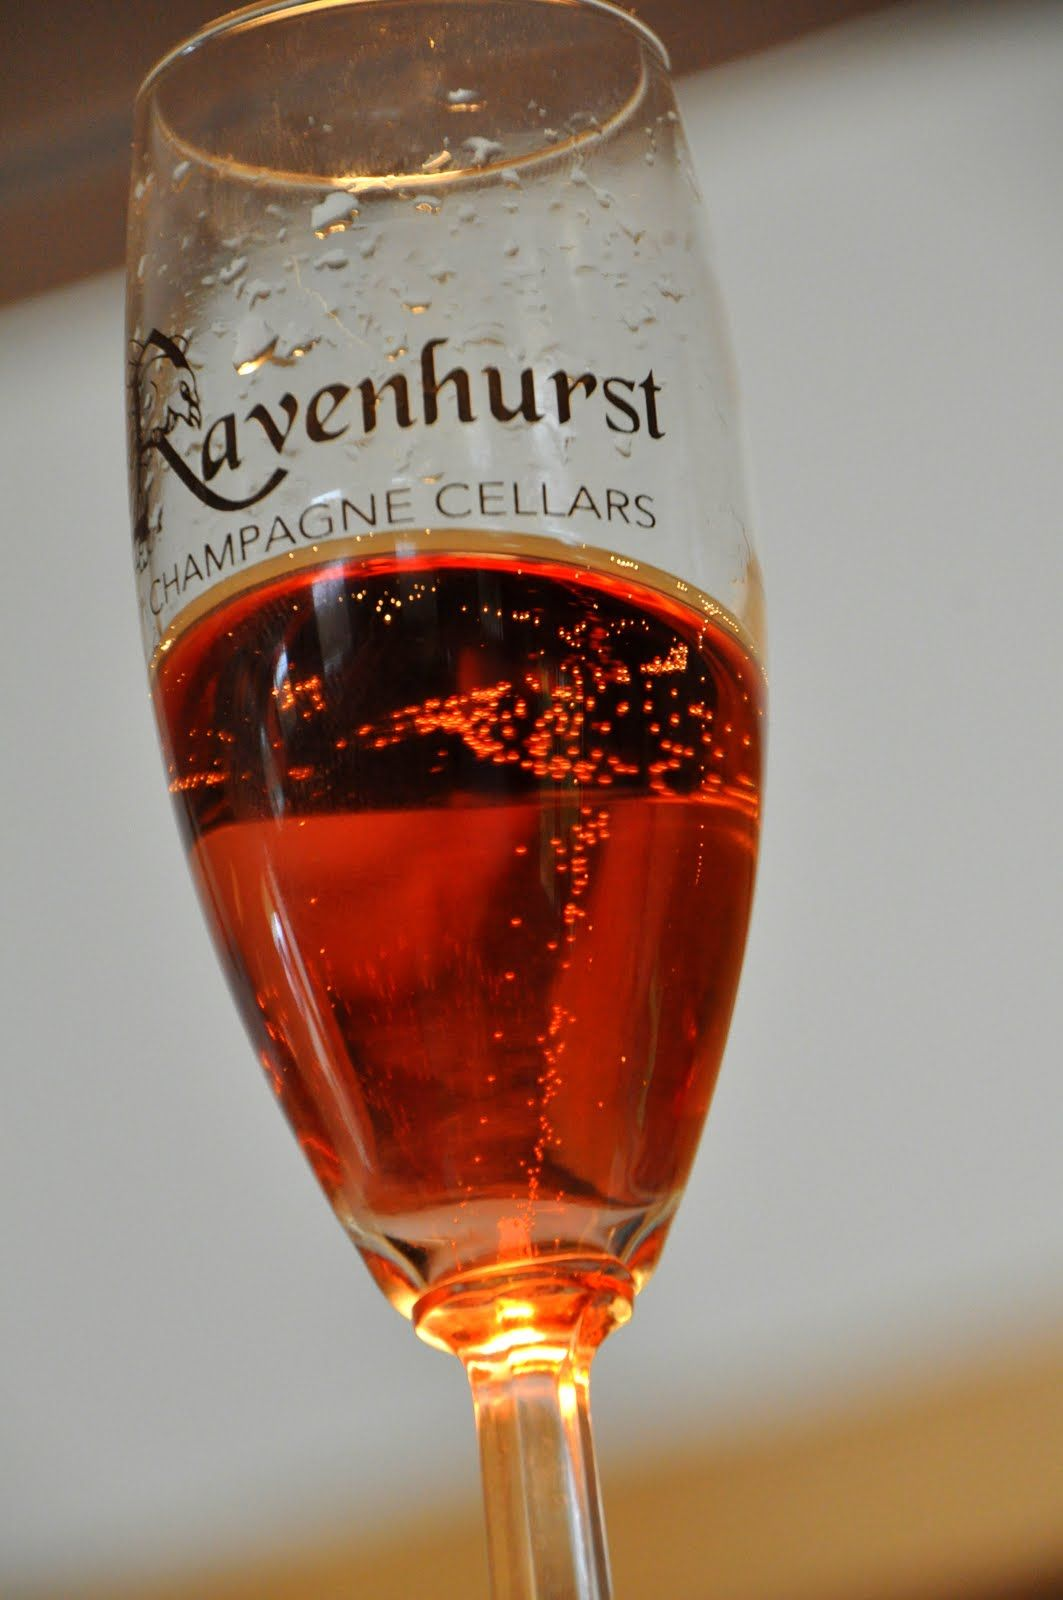 Ravenhurst Champagne Cellars In Mount Victory Oh Wine Making Champagne Alcoholic Drinks